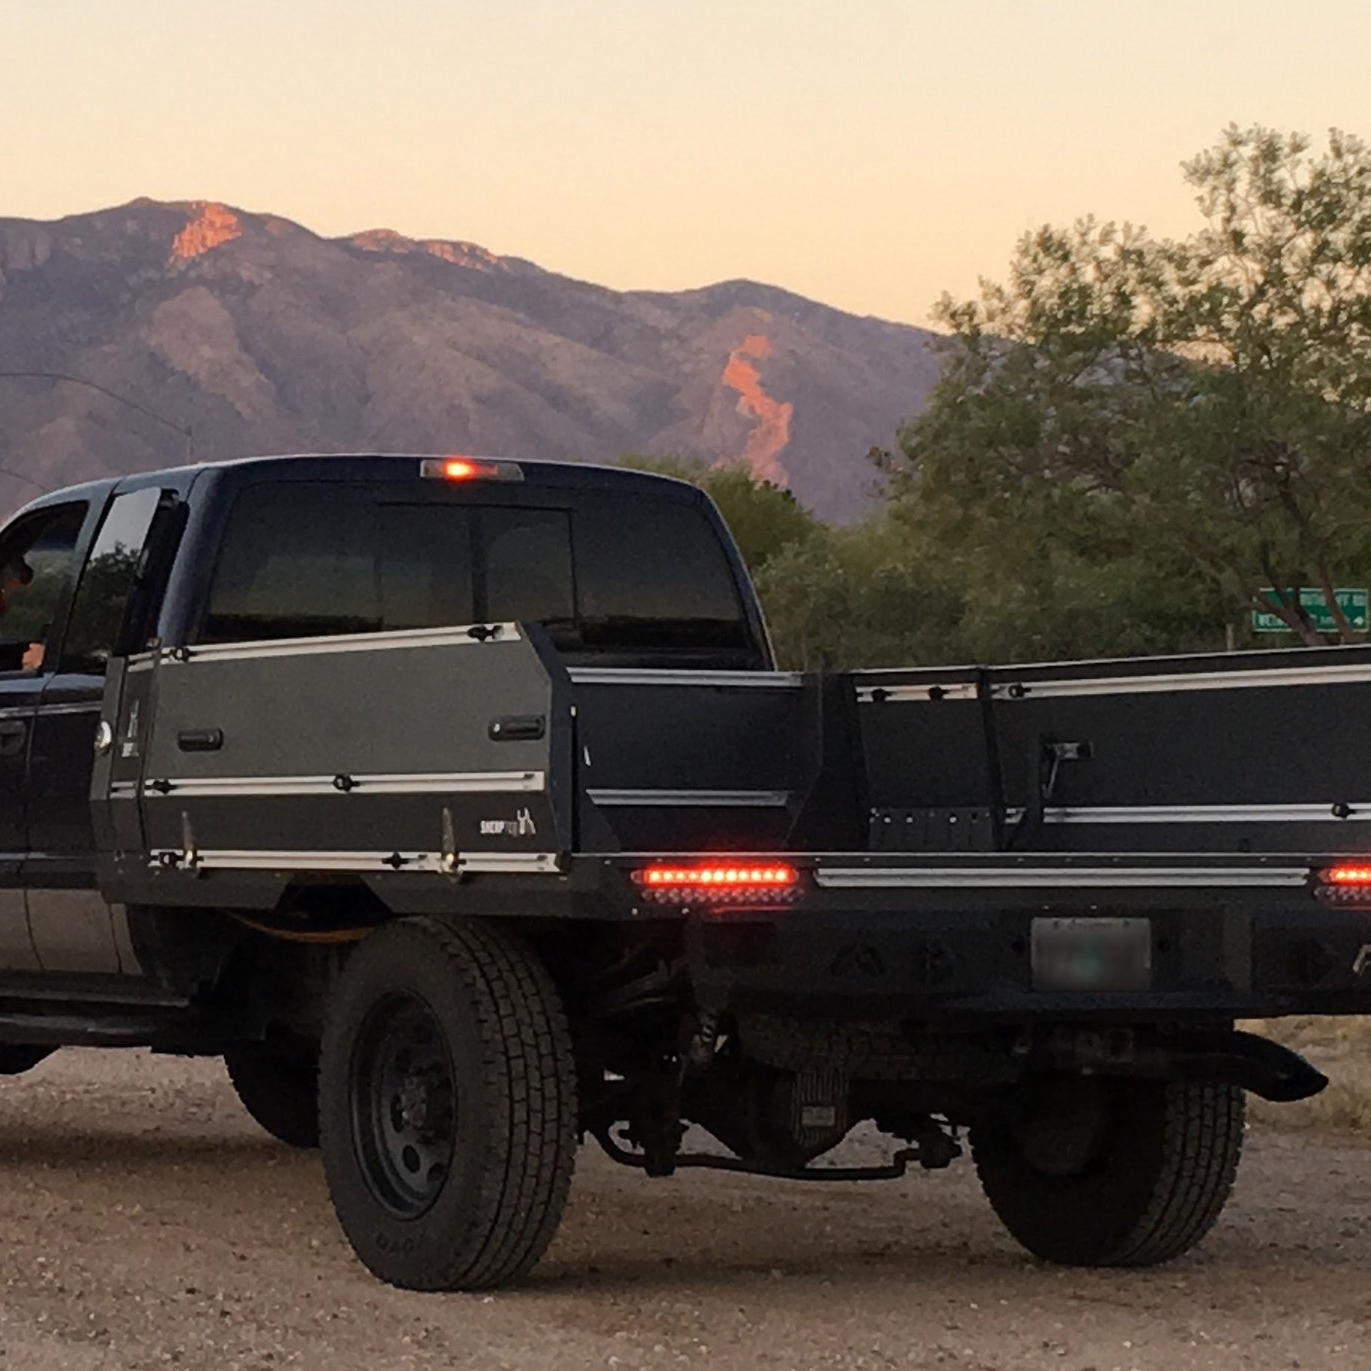 Pickup truck beds and built-to-order flatbed systems.